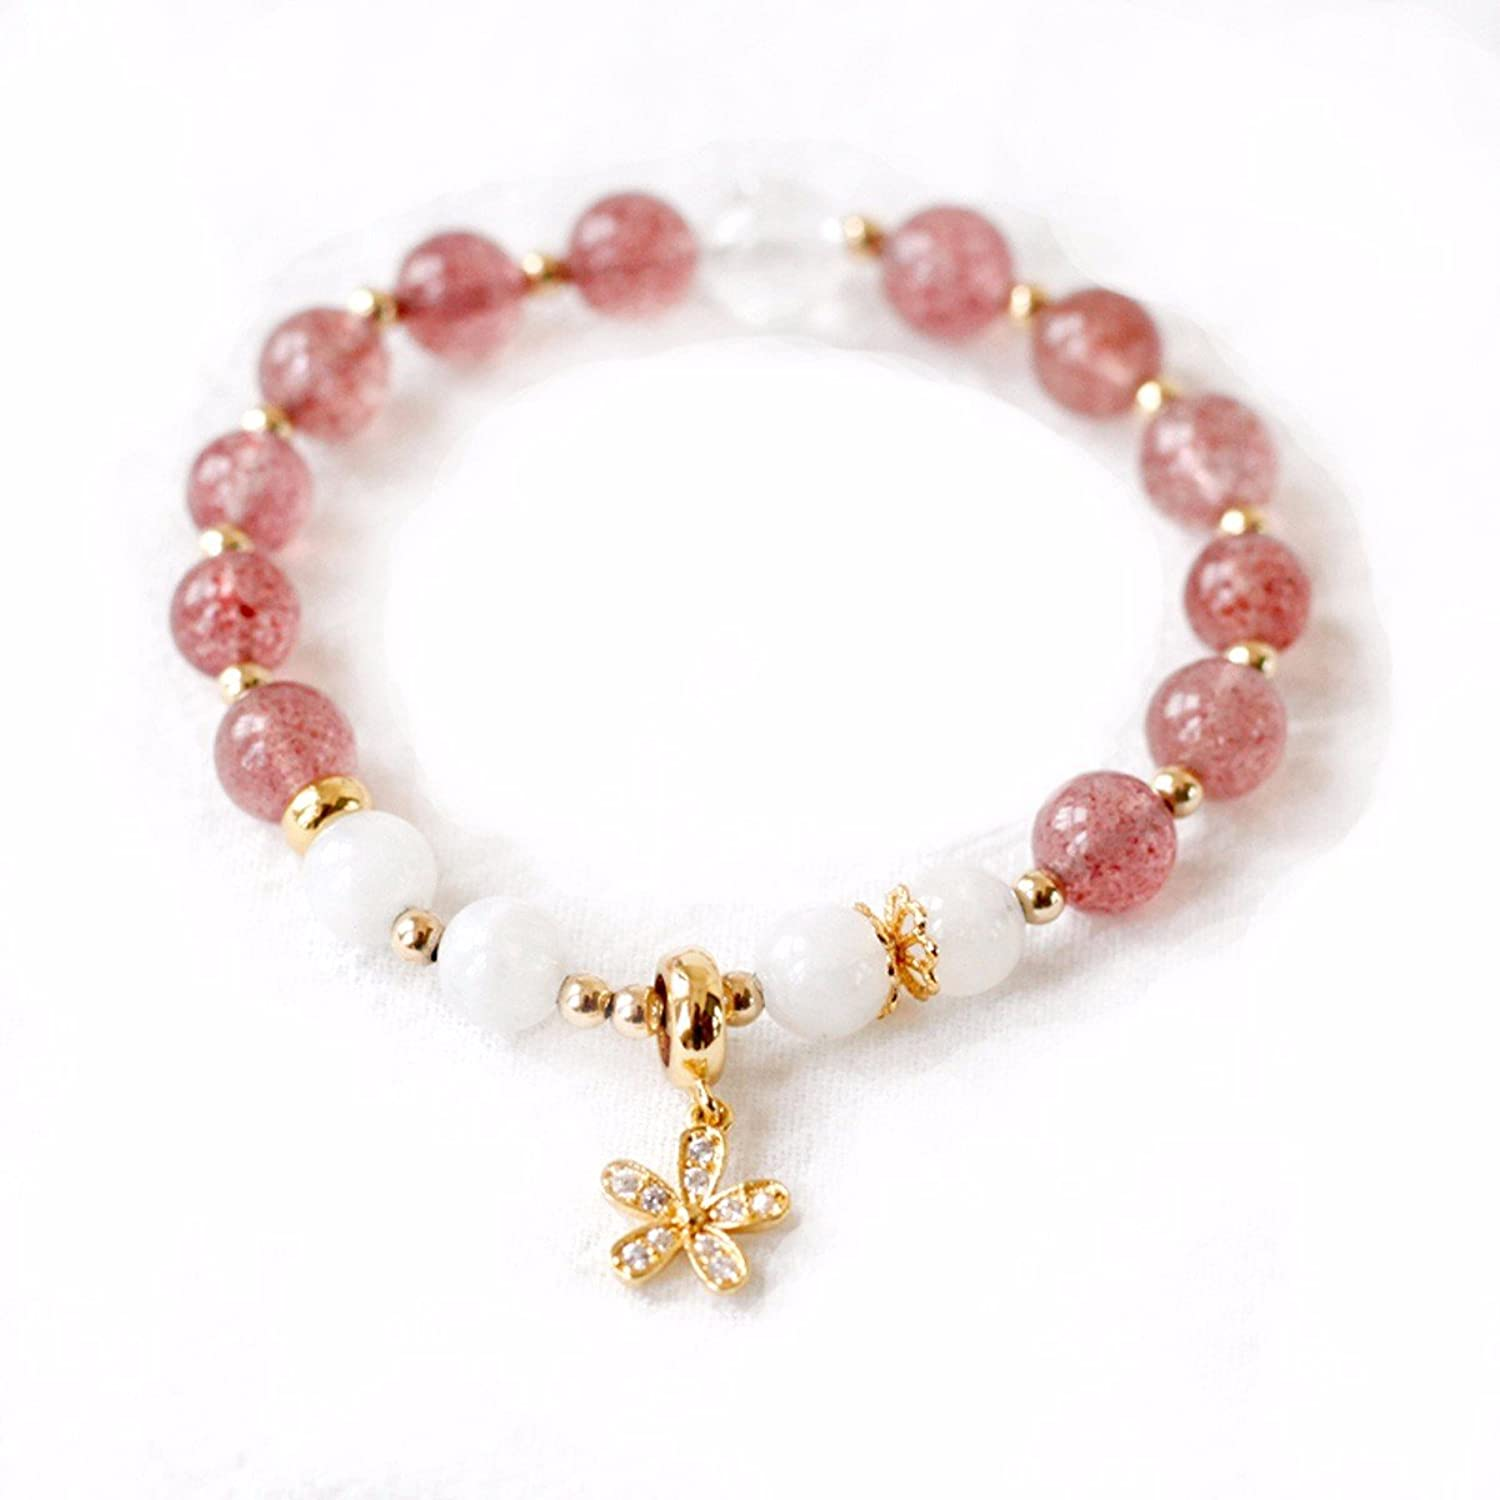 GTVERNH Gift Peach Blossom Prosperous Marriage Strawberry Crystal Bracelet Simple Personality Send Girlfriend